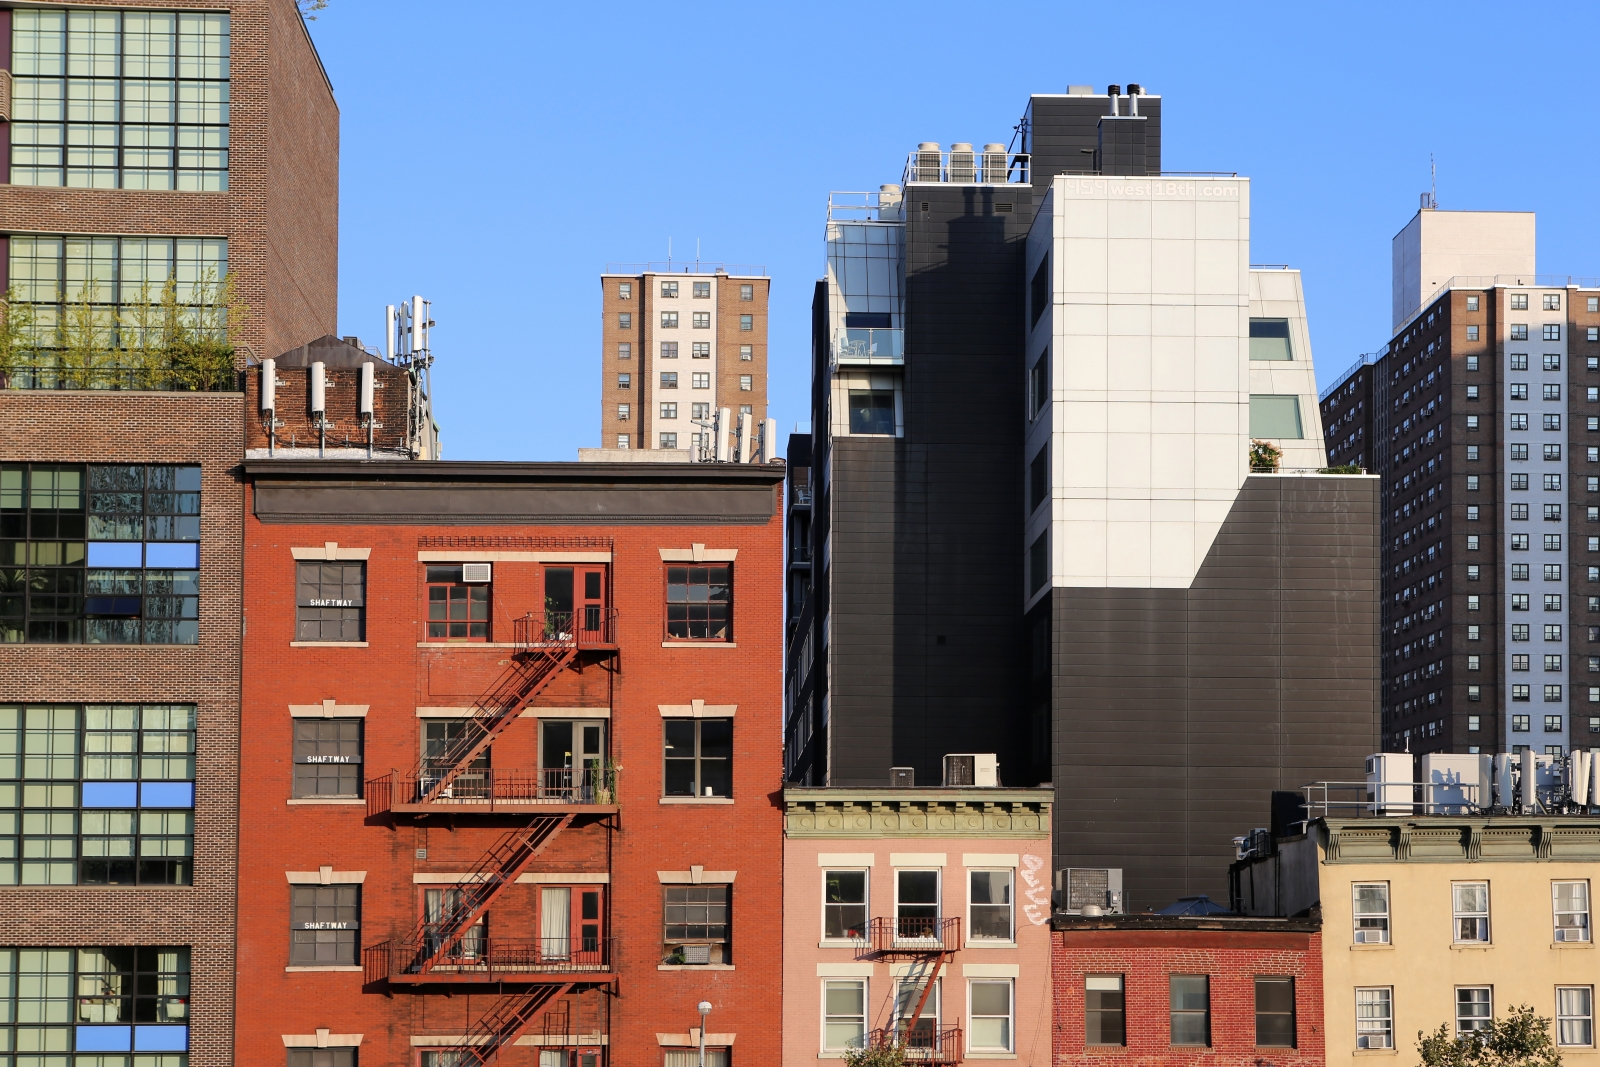 New York Rent Laws 2019: What Changes for NYC Renters